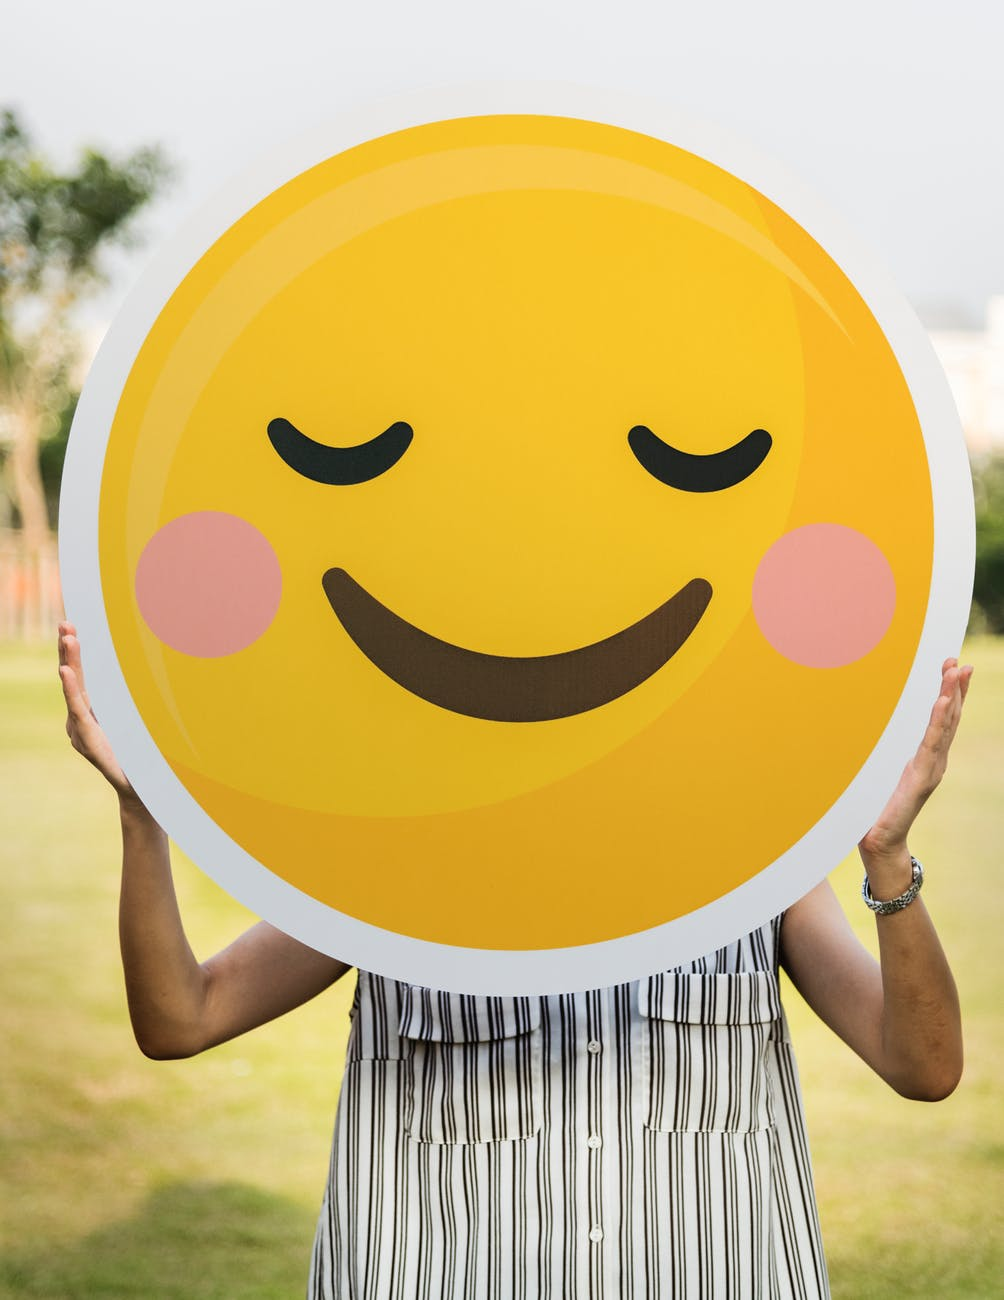 Commentary: The Happiest People Make the Most of Everything